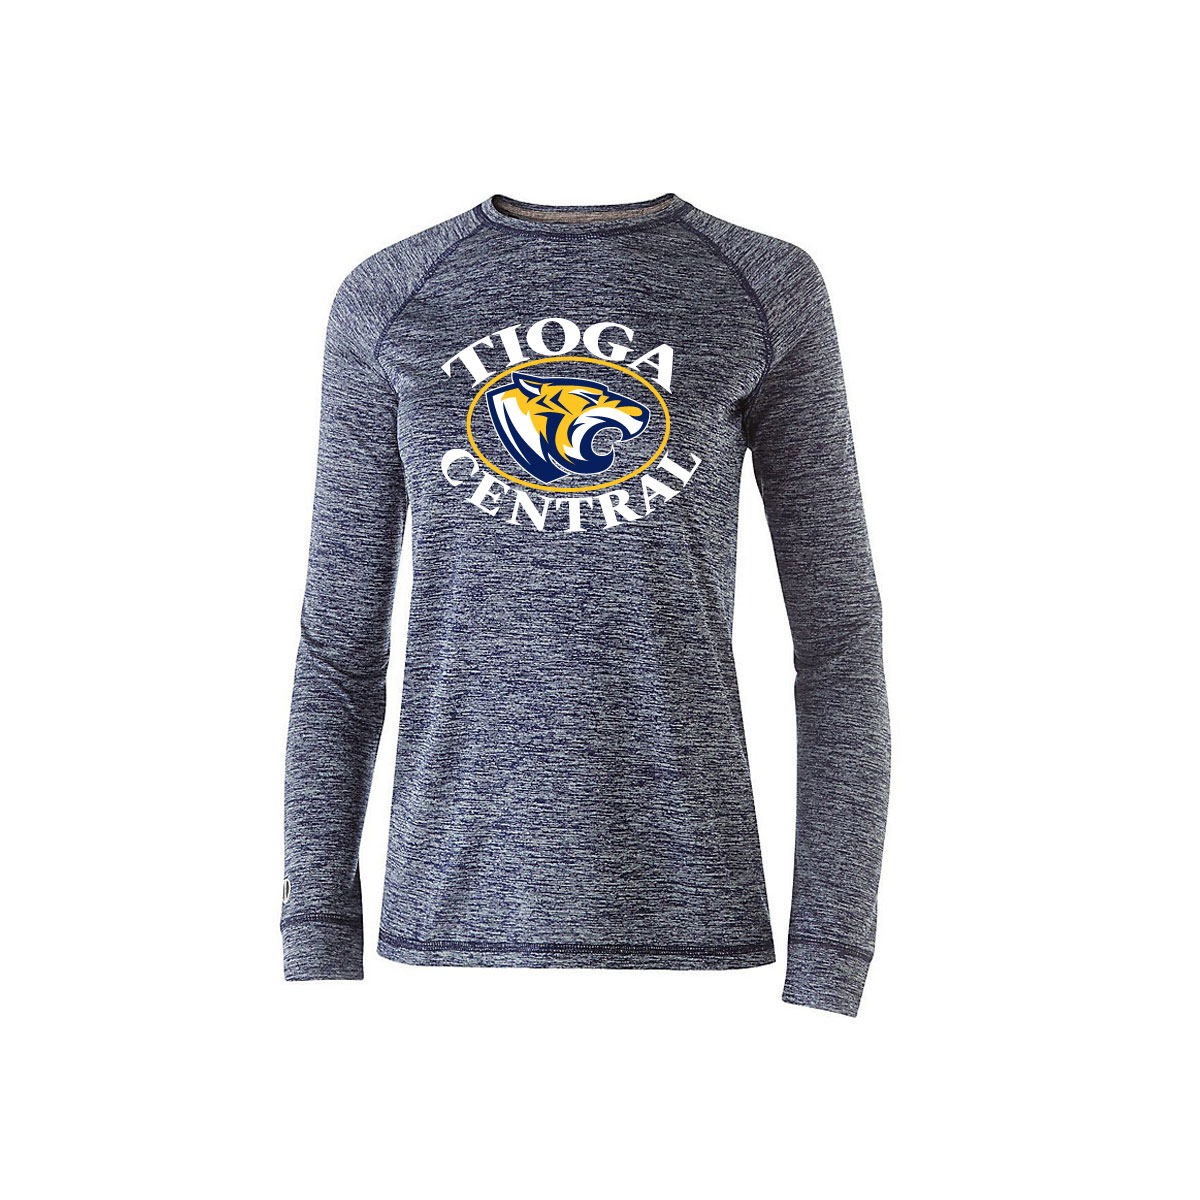 Tioga Central Ladies Electrify 20 Long Sleeve T Shirt Embroidery